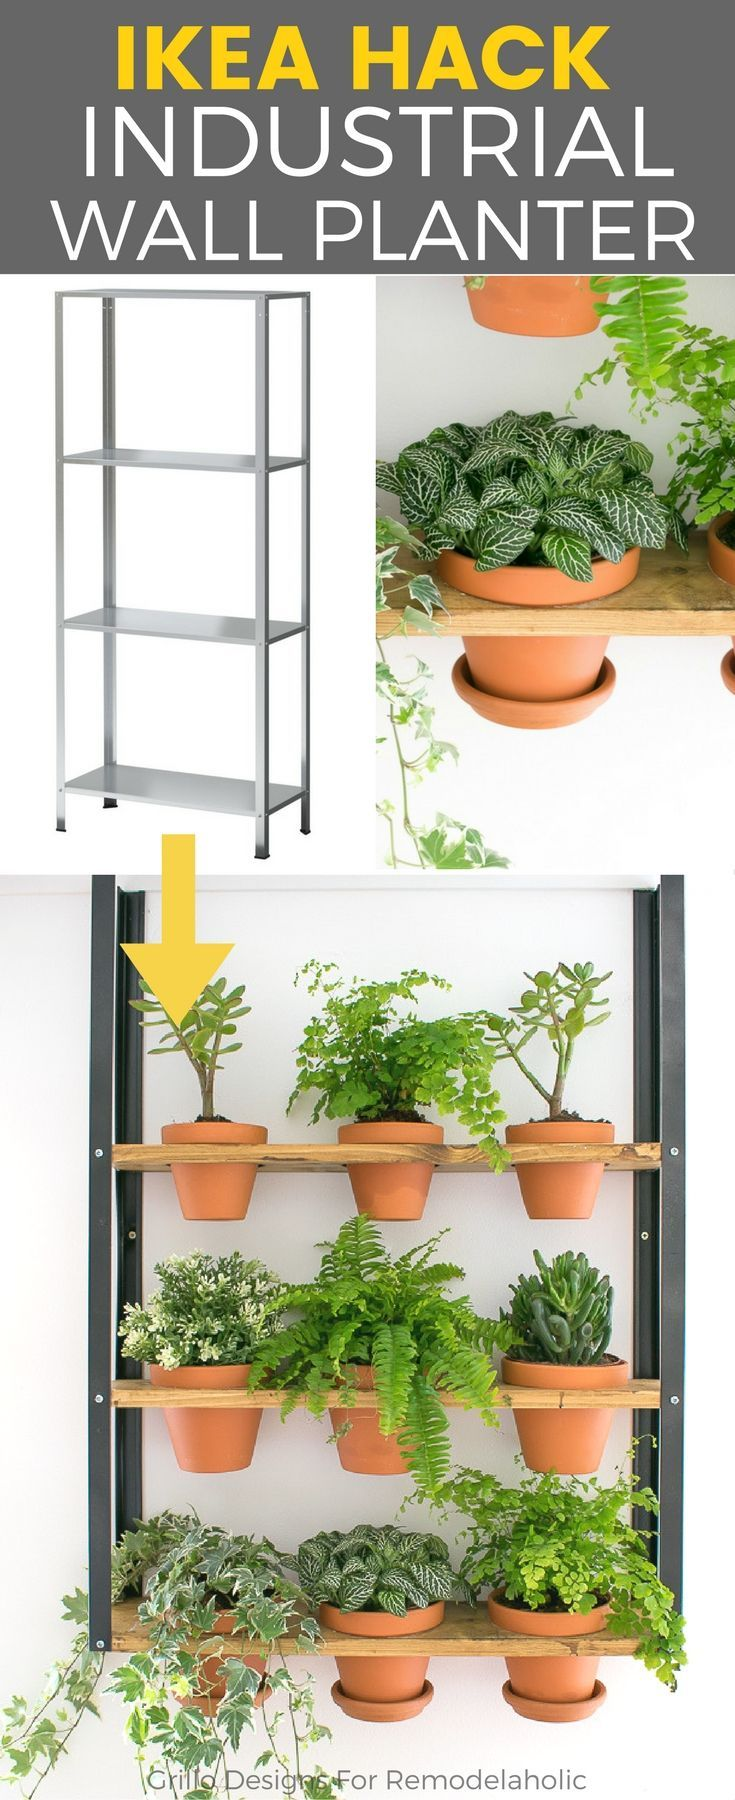 HYLISS IKEA HACK - Sharing how I used the IKEA HYLLIS shelf to create an industrial style wall planter. See Remodelaholic for tutorial!